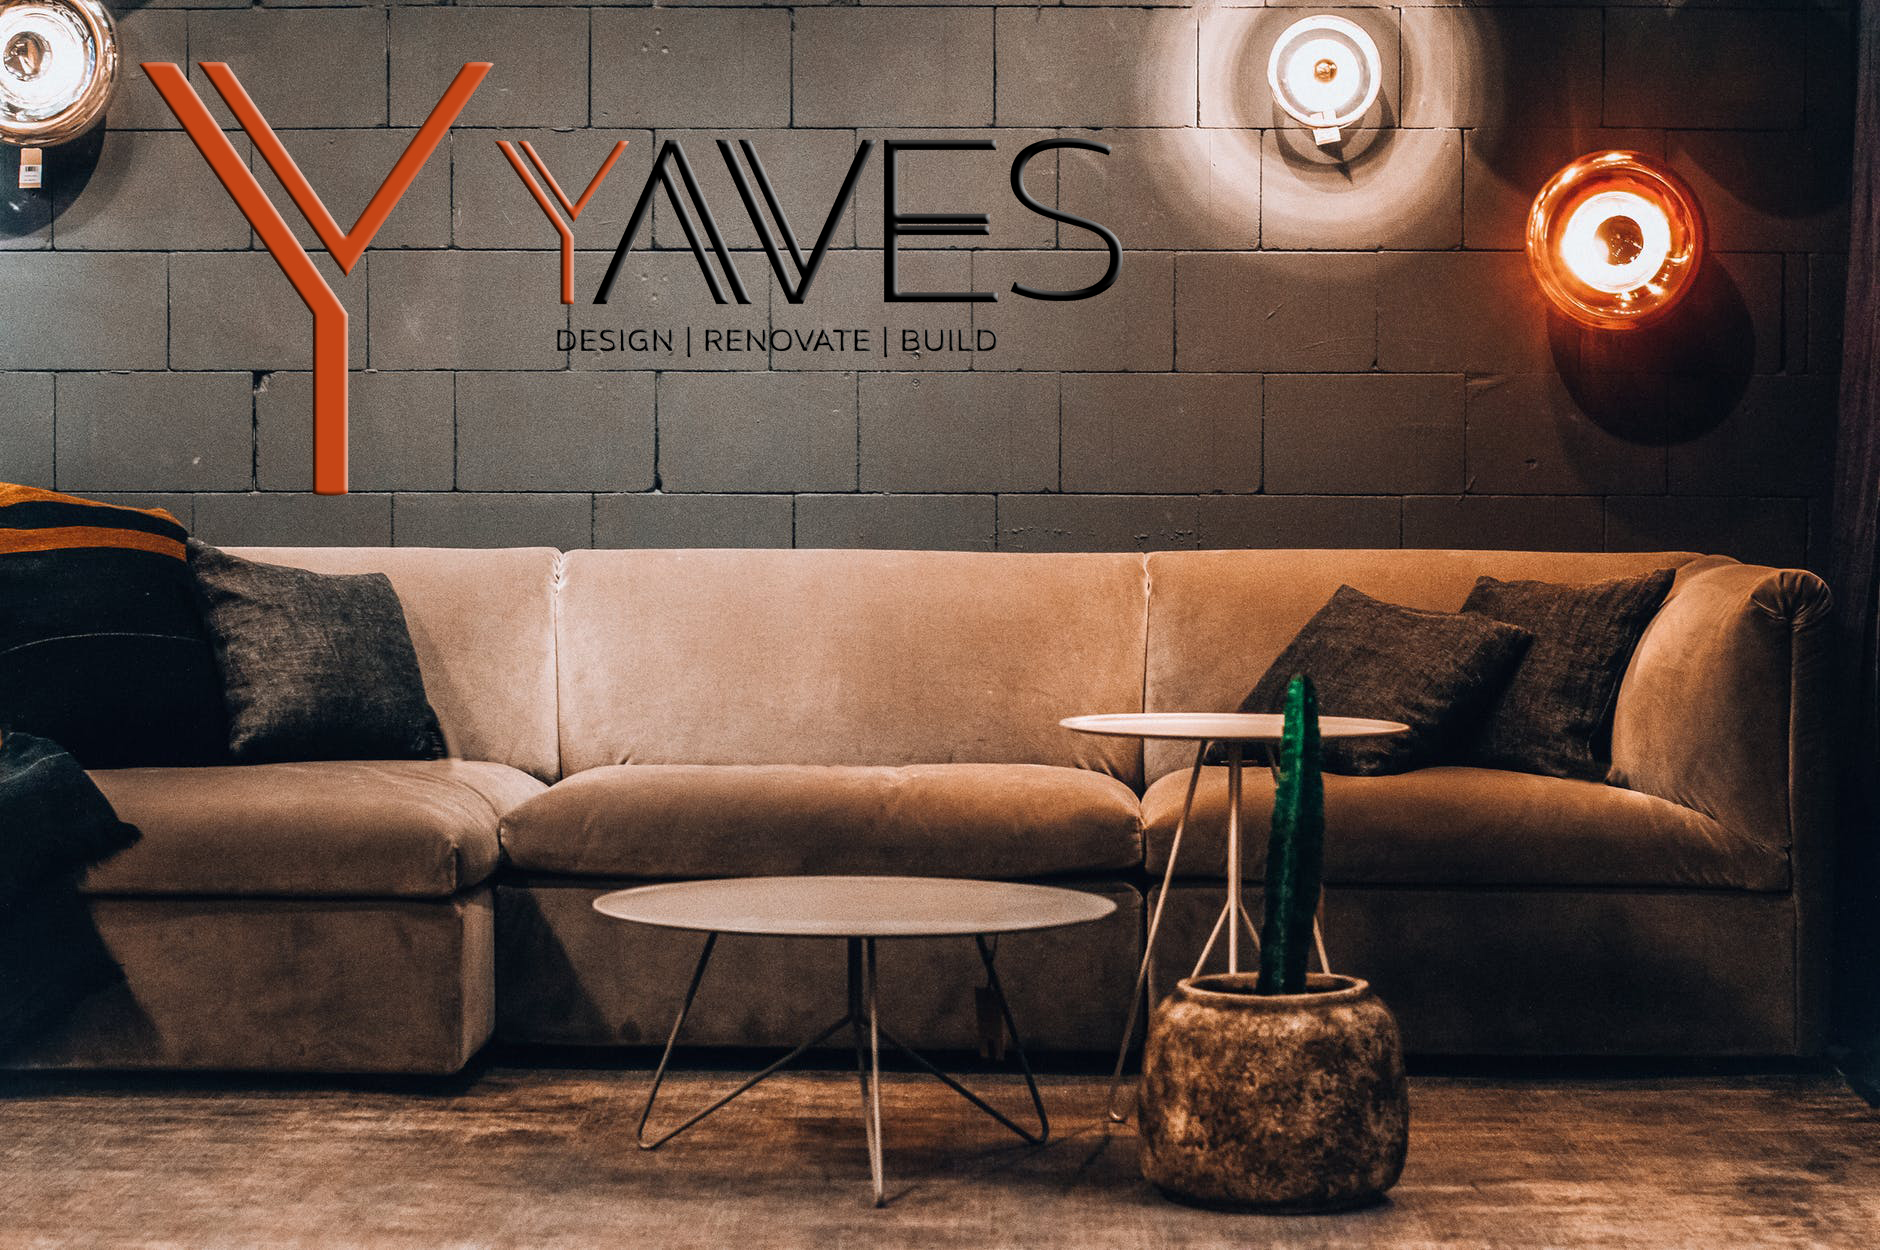 yaves couch